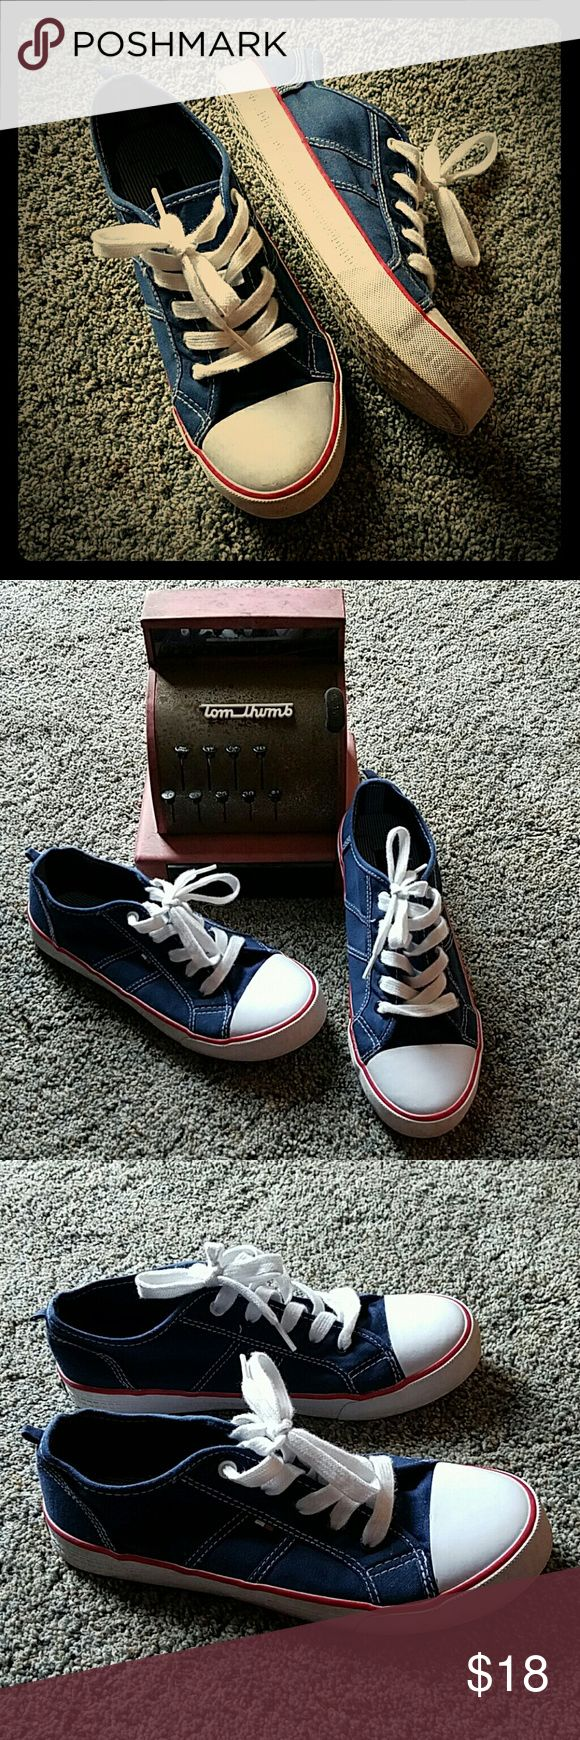 Tommy Hilfiger fashion sneakers Tommy Hilfiger fashion sneakers.     General wear, but all in good condition. Tommy Hilfiger Shoes Sneakers